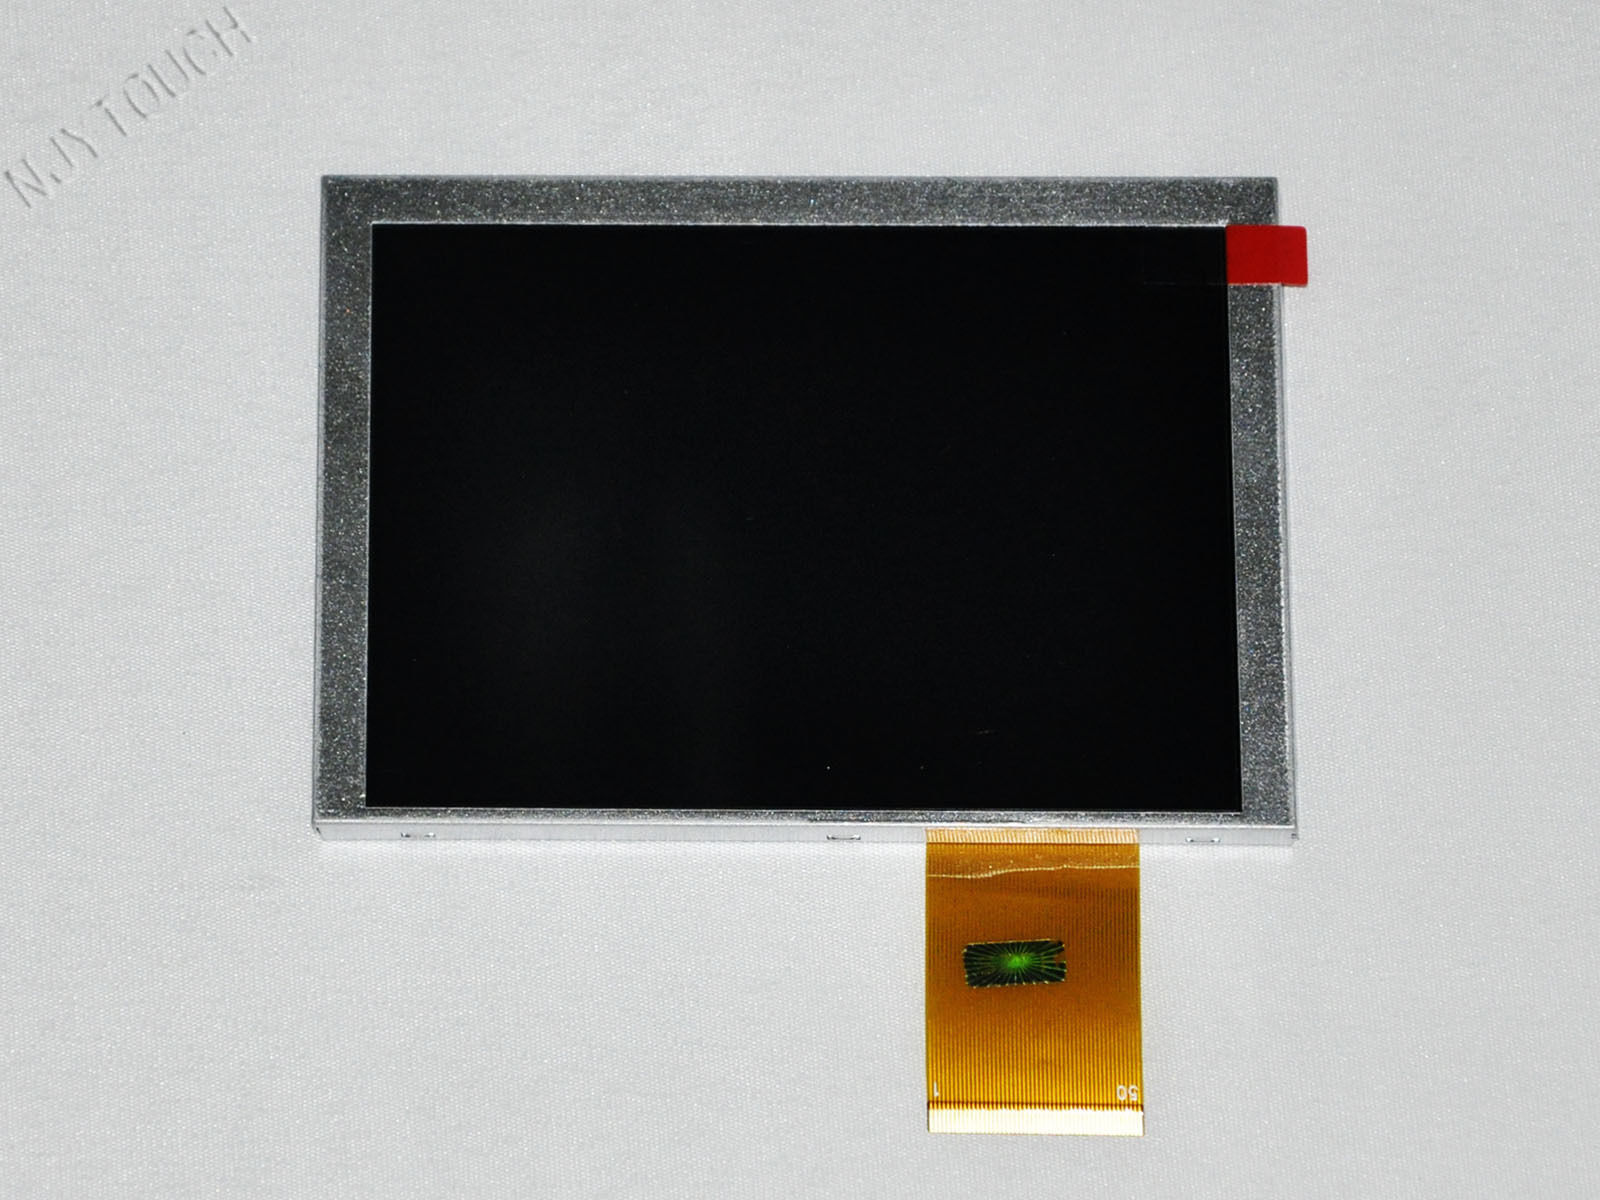 INNOLUX AT050TN22 V1 LCD Panel